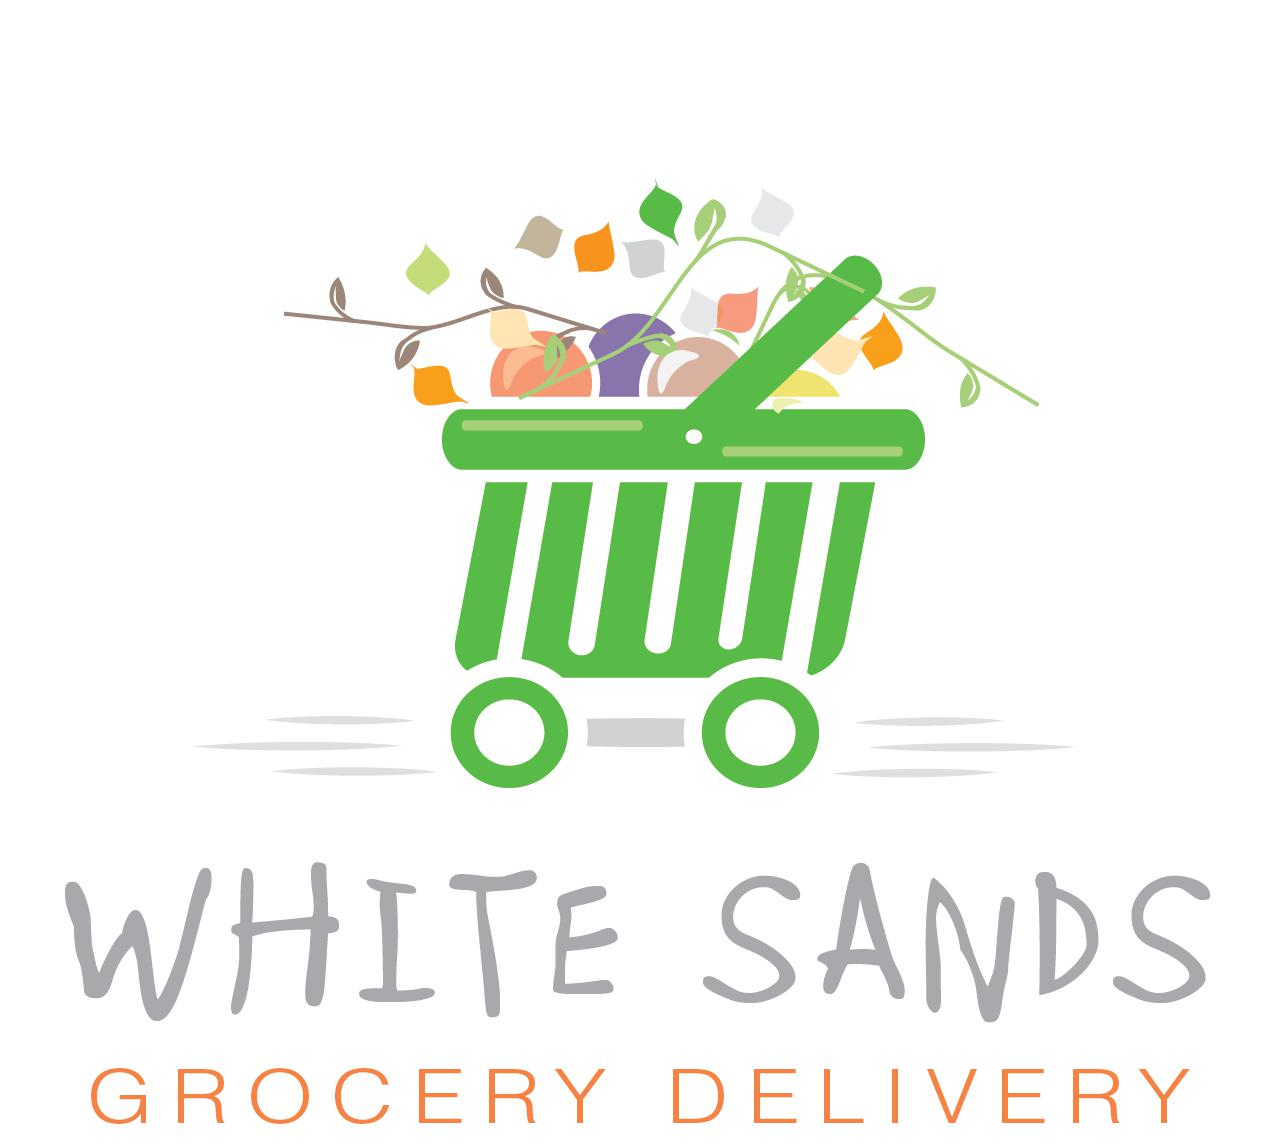 white sands grocery delivery Logo